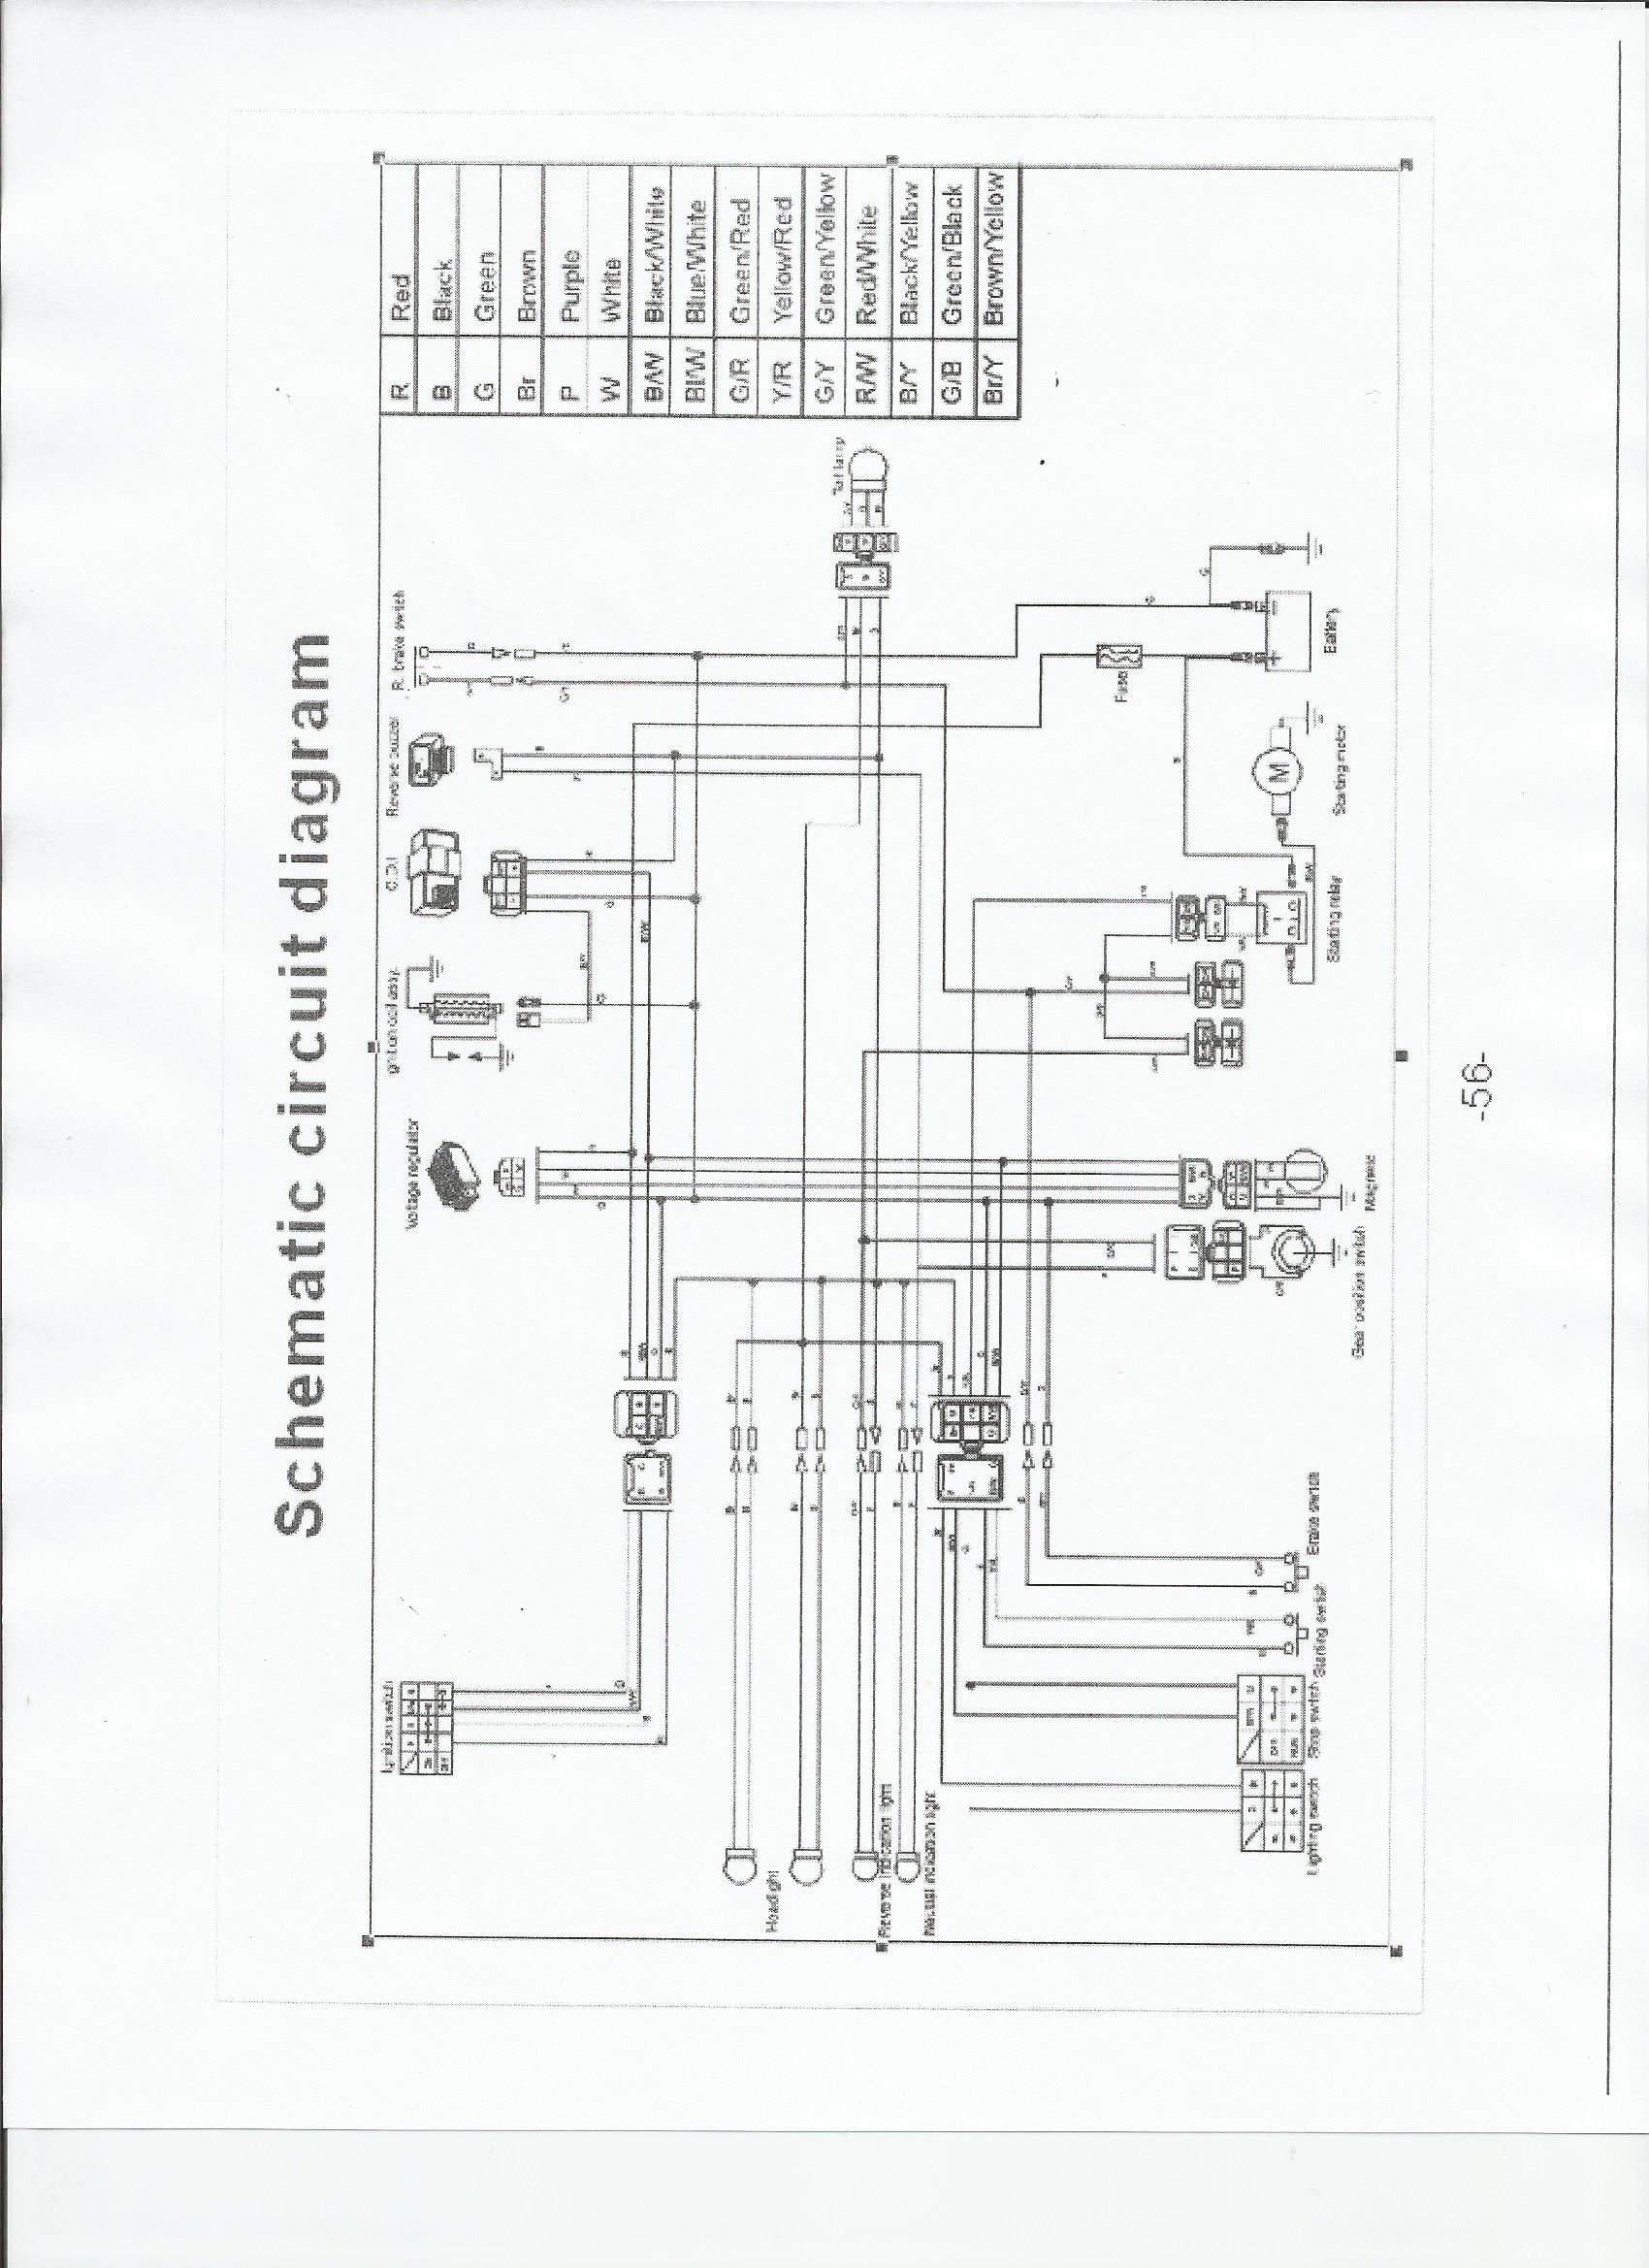 tao tao wiring schematic taotao mini and youth atv wiring schematic familygokarts support loncin 110 atv wiring diagram at crackthecode.co